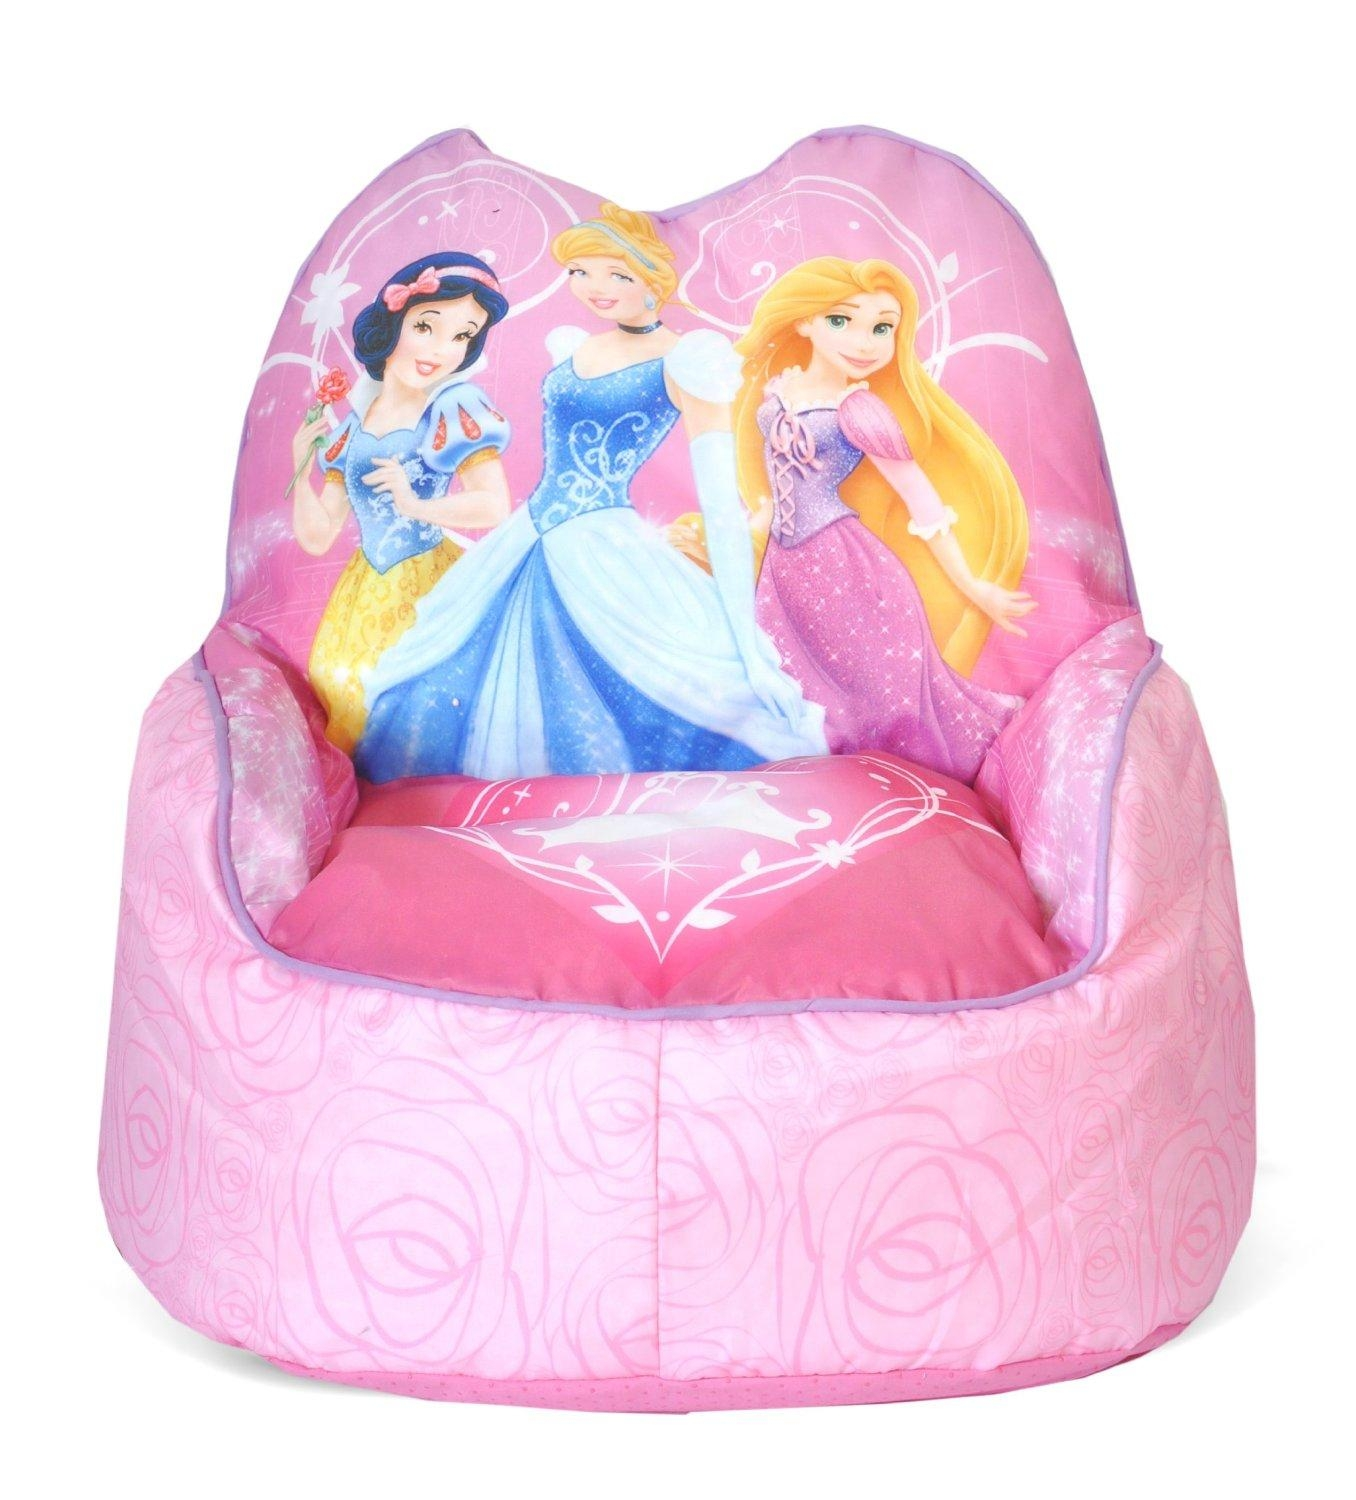 Toys R Us Kids Chairs 2019 Latest Disney Sofa Chairs Sofa Ideas